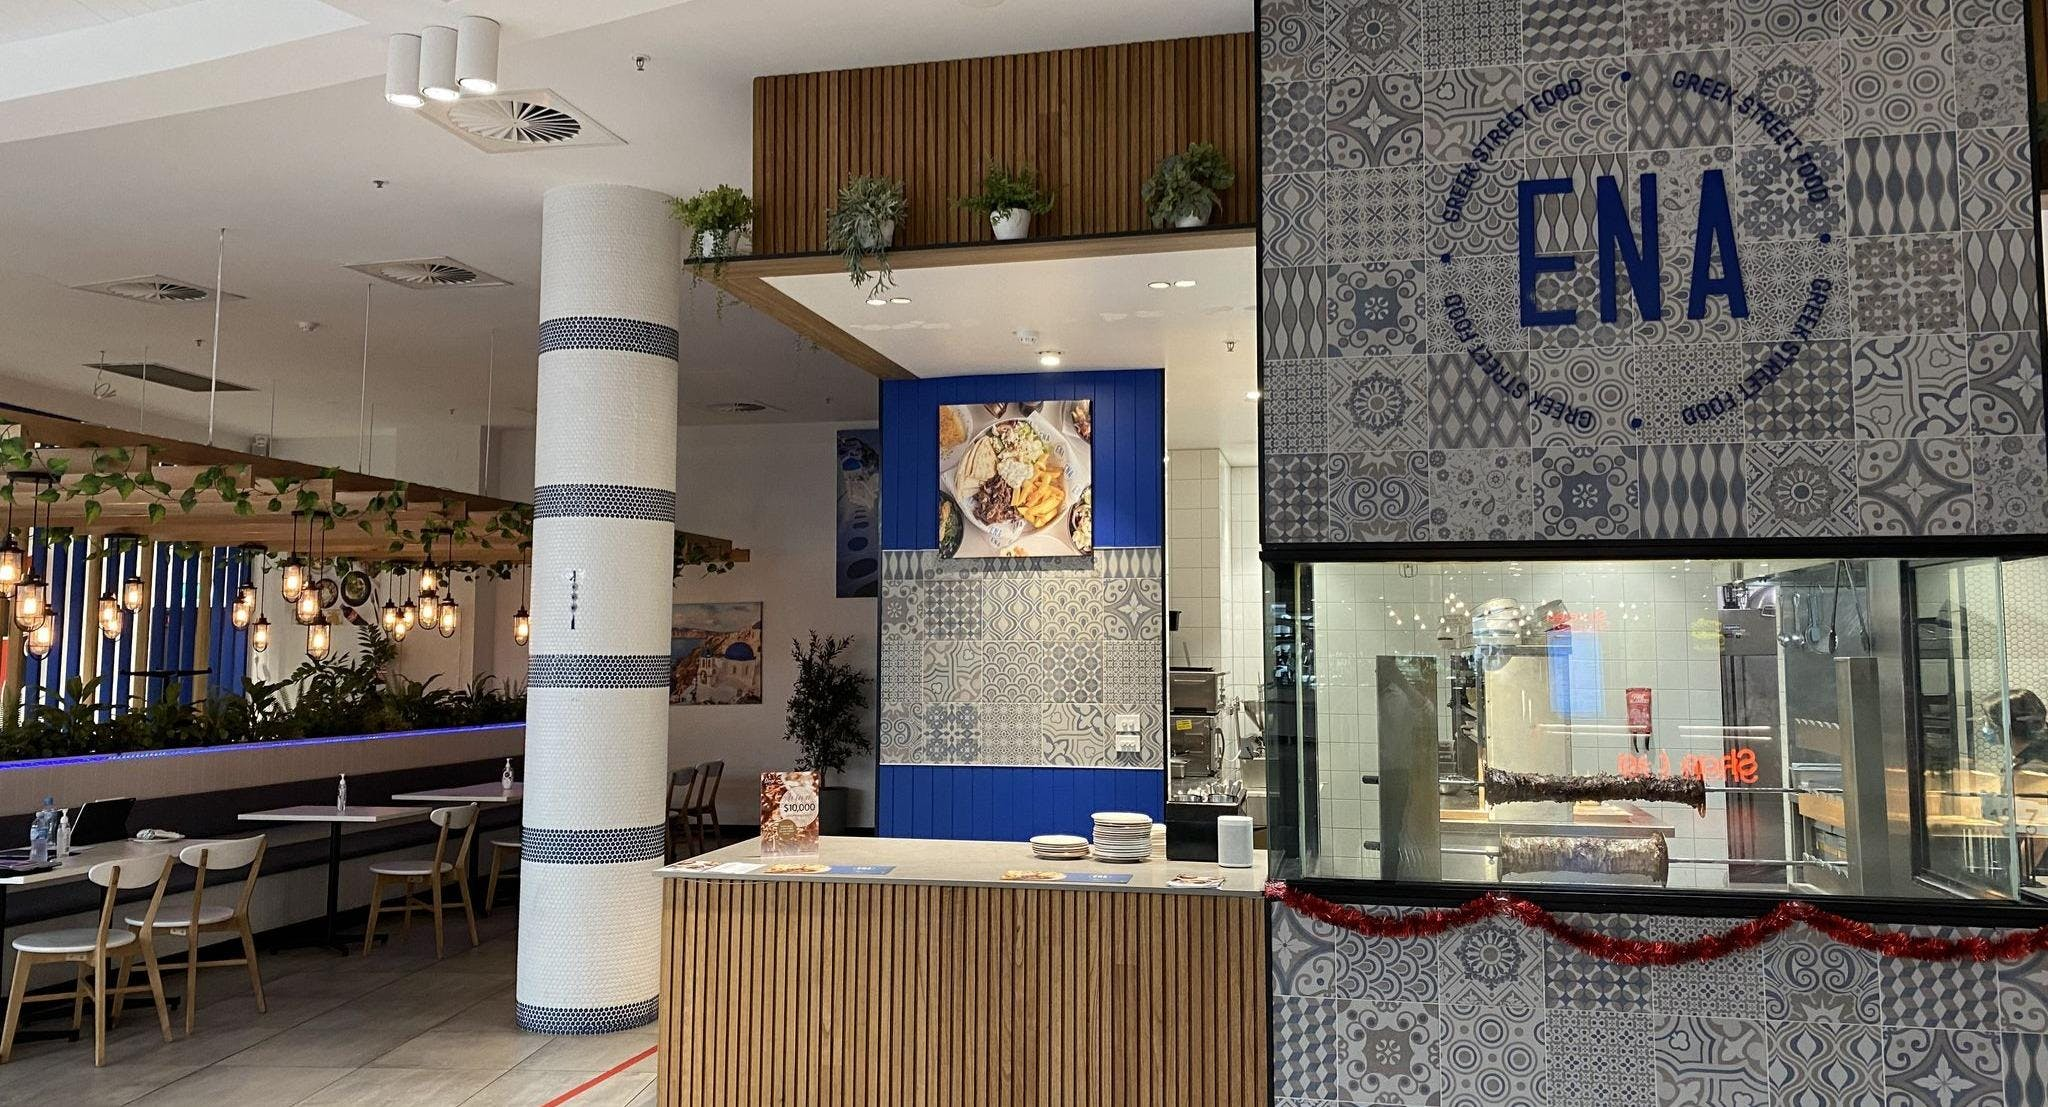 Photo of restaurant ENA Greek Street Food - Forest Hill in Forest Hill, Melbourne